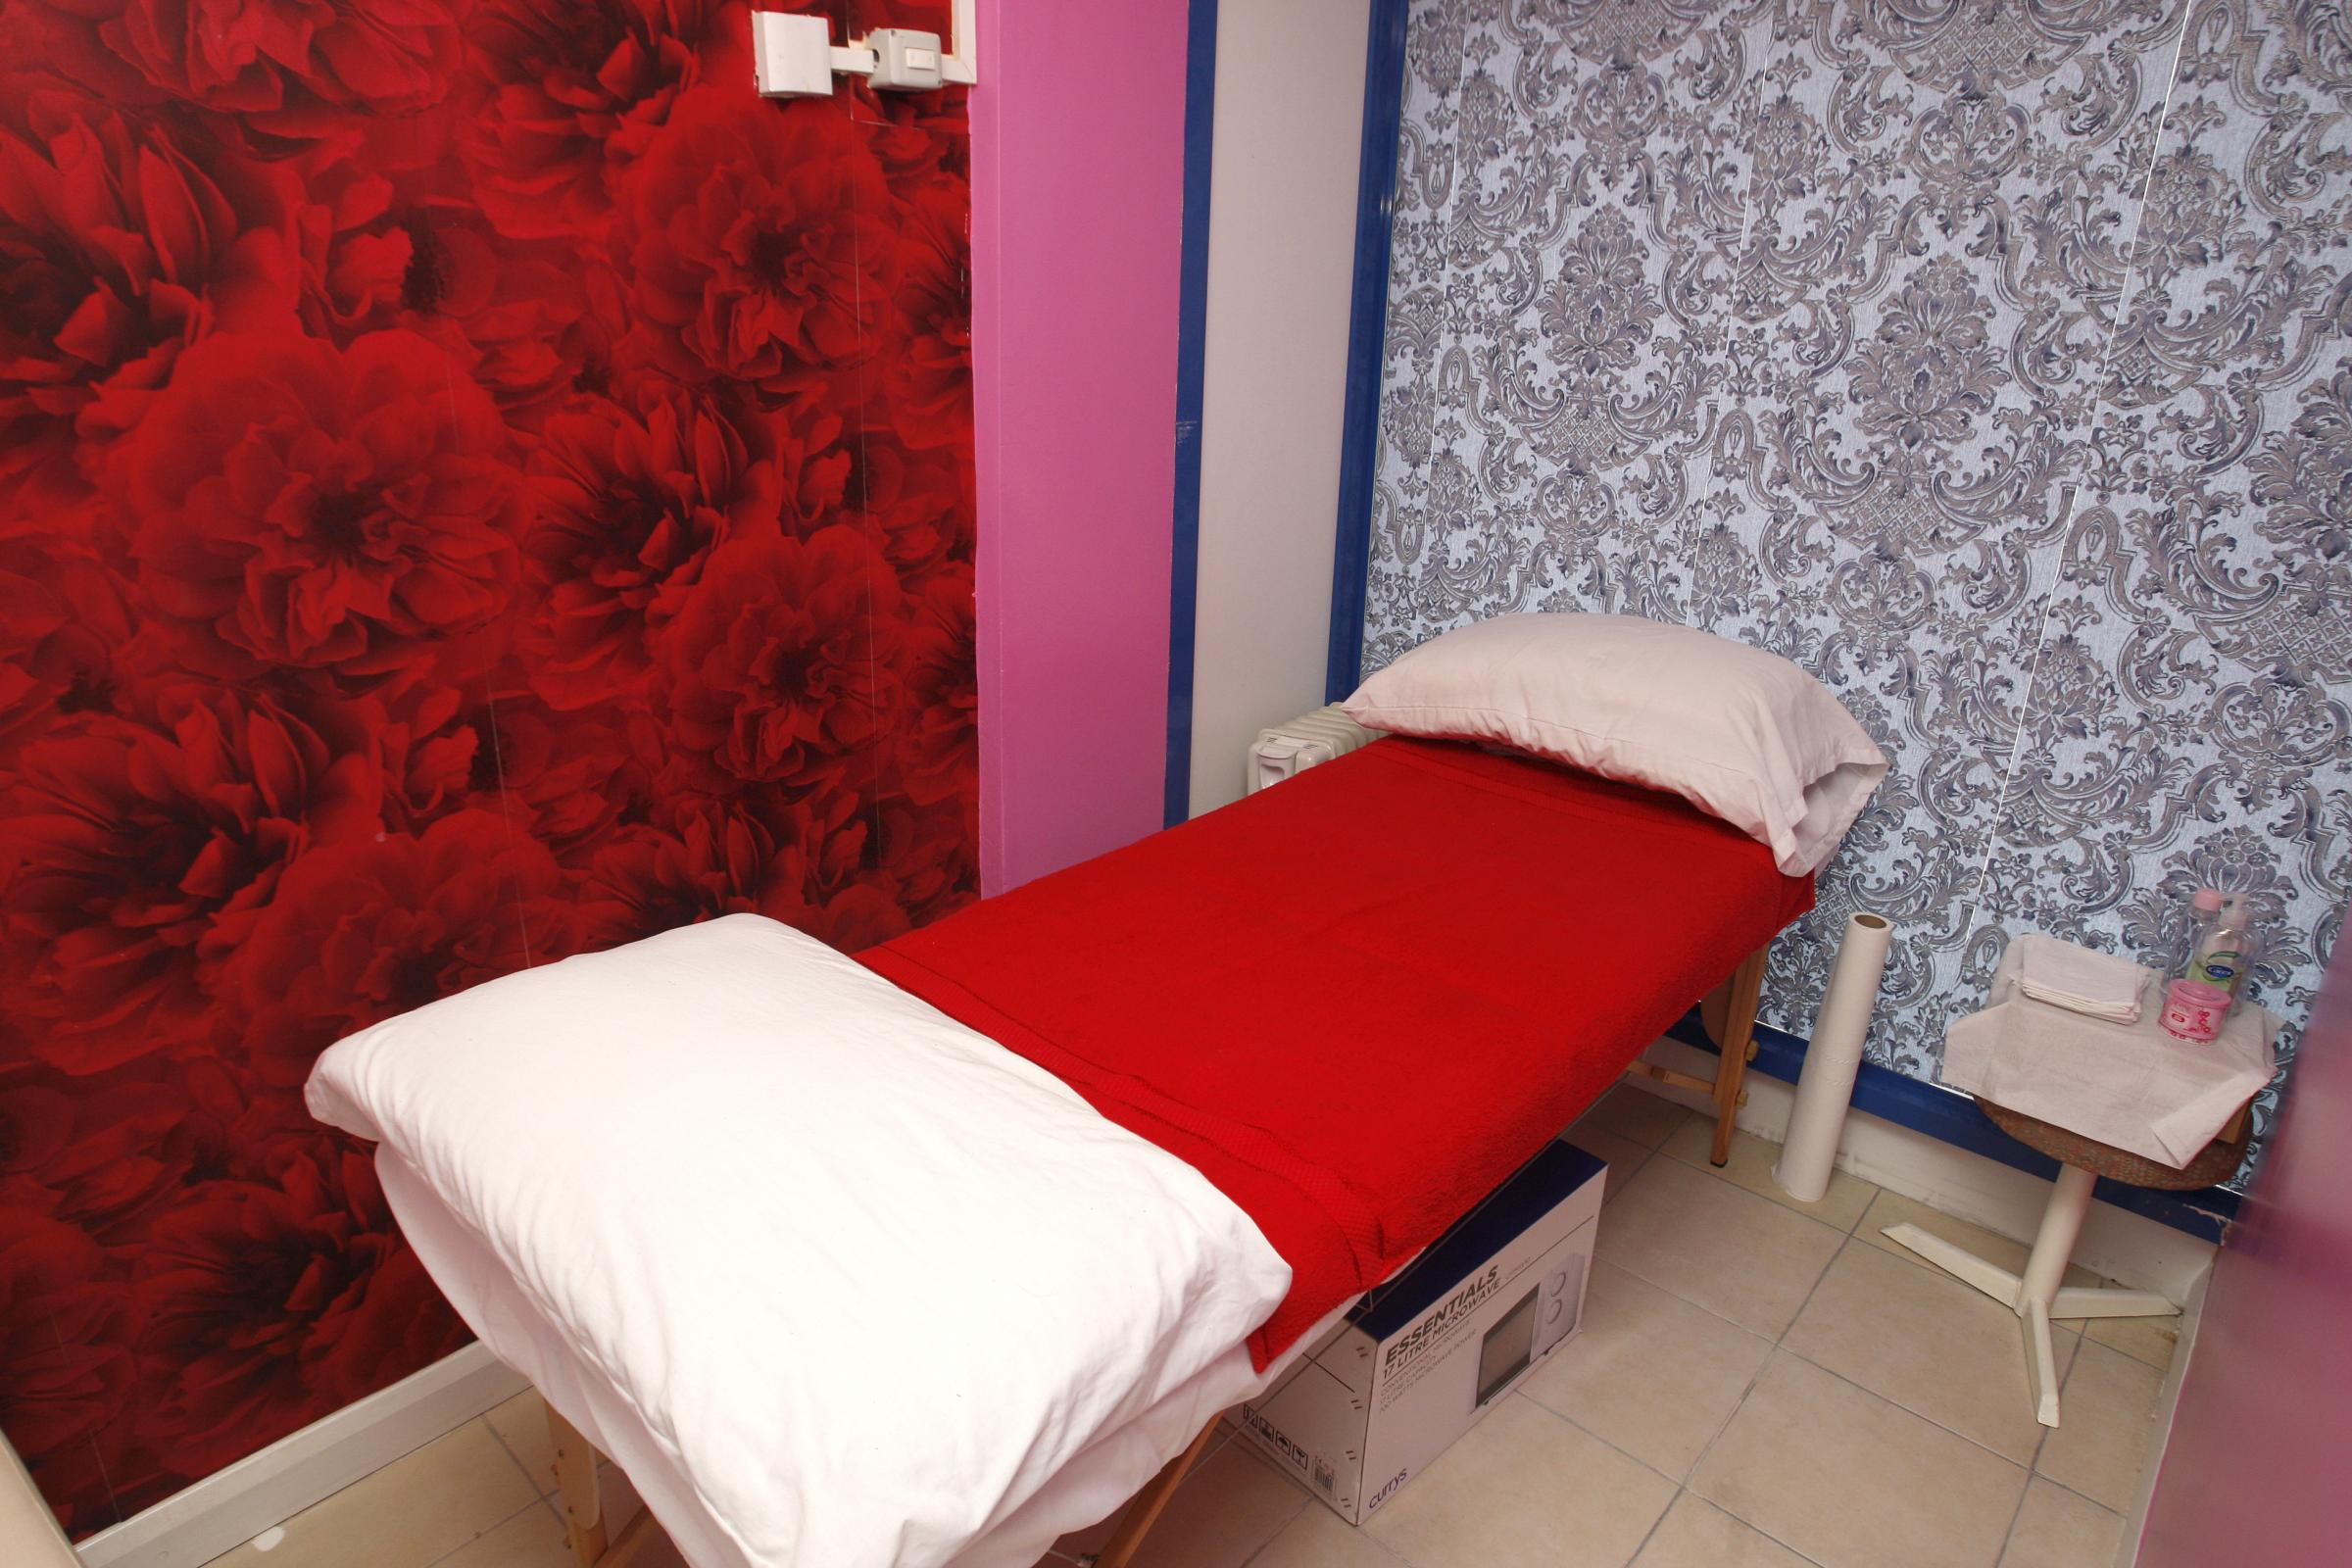 Controversial Chinese massage parlour in West Watford approved by politicians